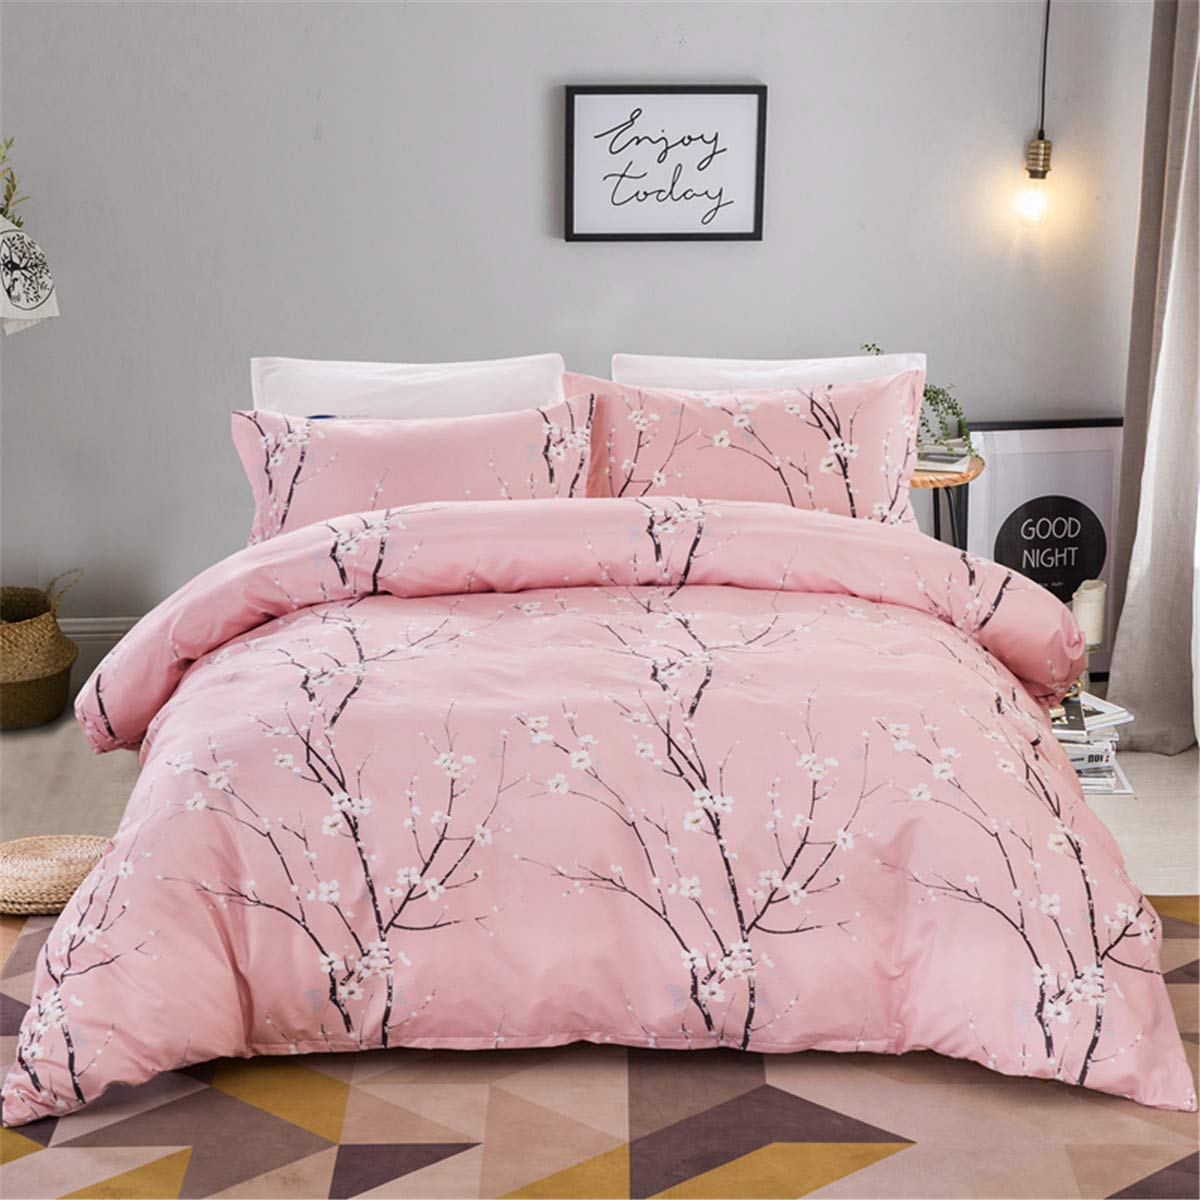 """Guidear Pink Floral Bedding Set for Girls Teens,Plum Flower Pattern Duvet Cover with 2 Pillowcases, 3 Pieces Soft Microfiber Quilt Cover with Zipper Closure Queen Size 90"""" x 90"""""""